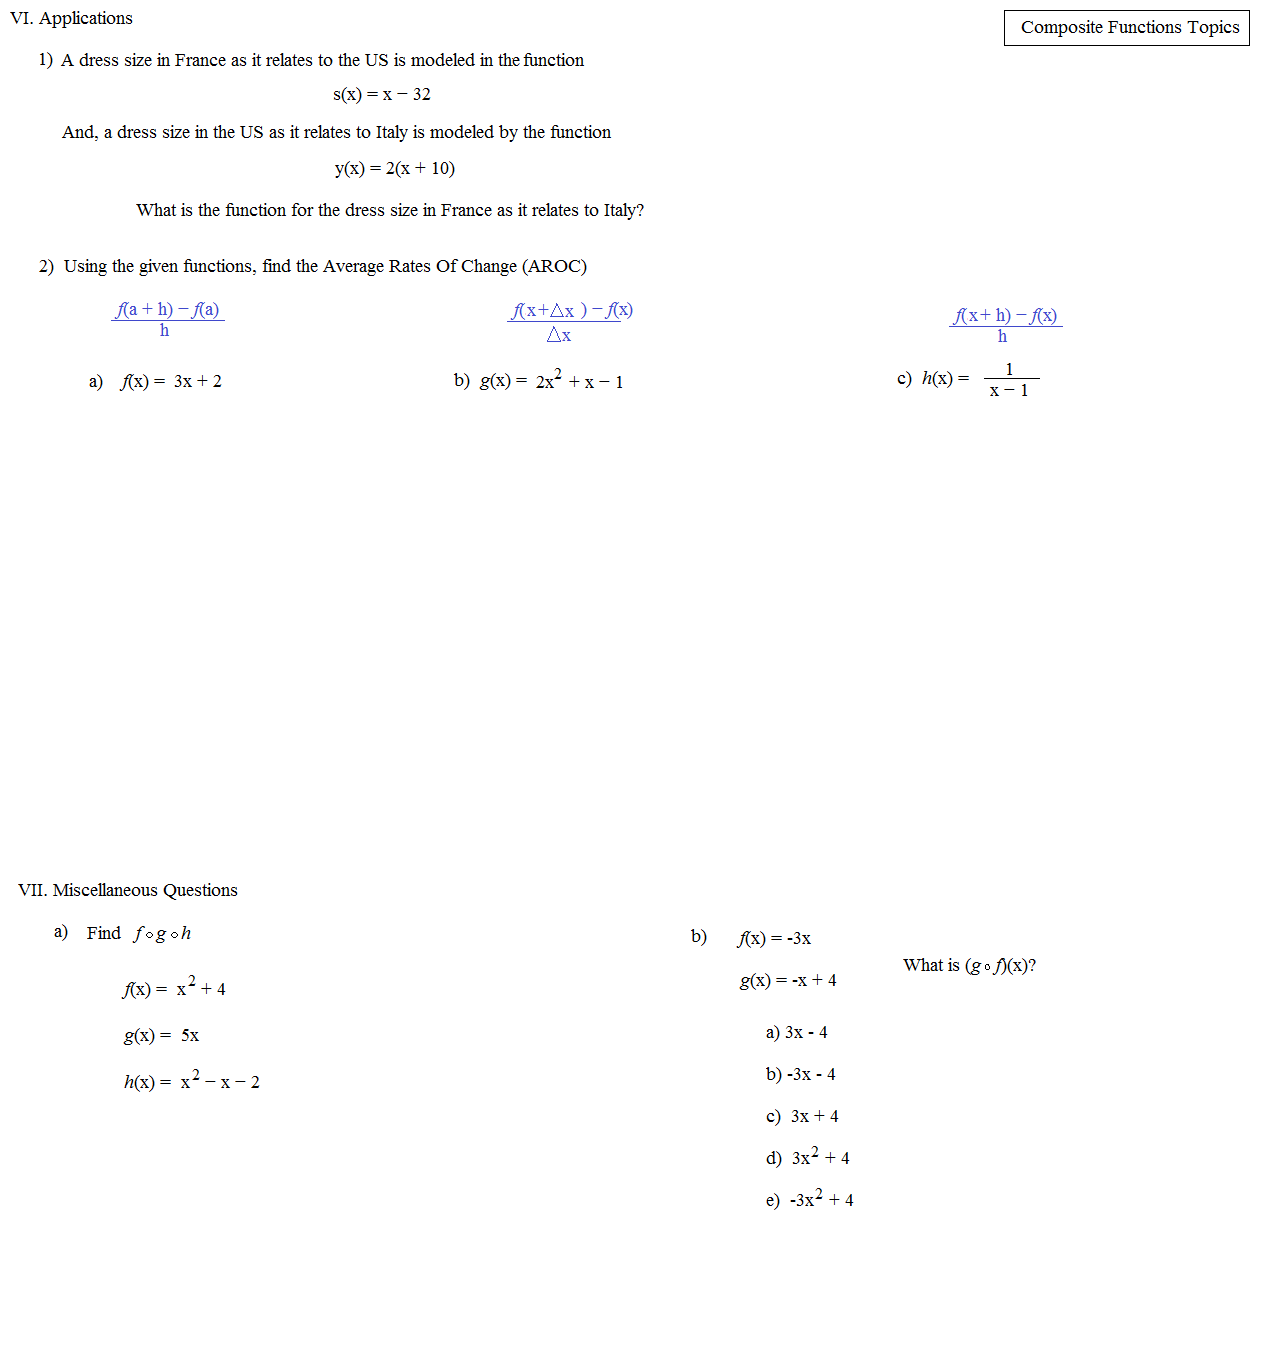 worksheet Composite Functions Worksheet With Answers math plane composite functions topics function 4